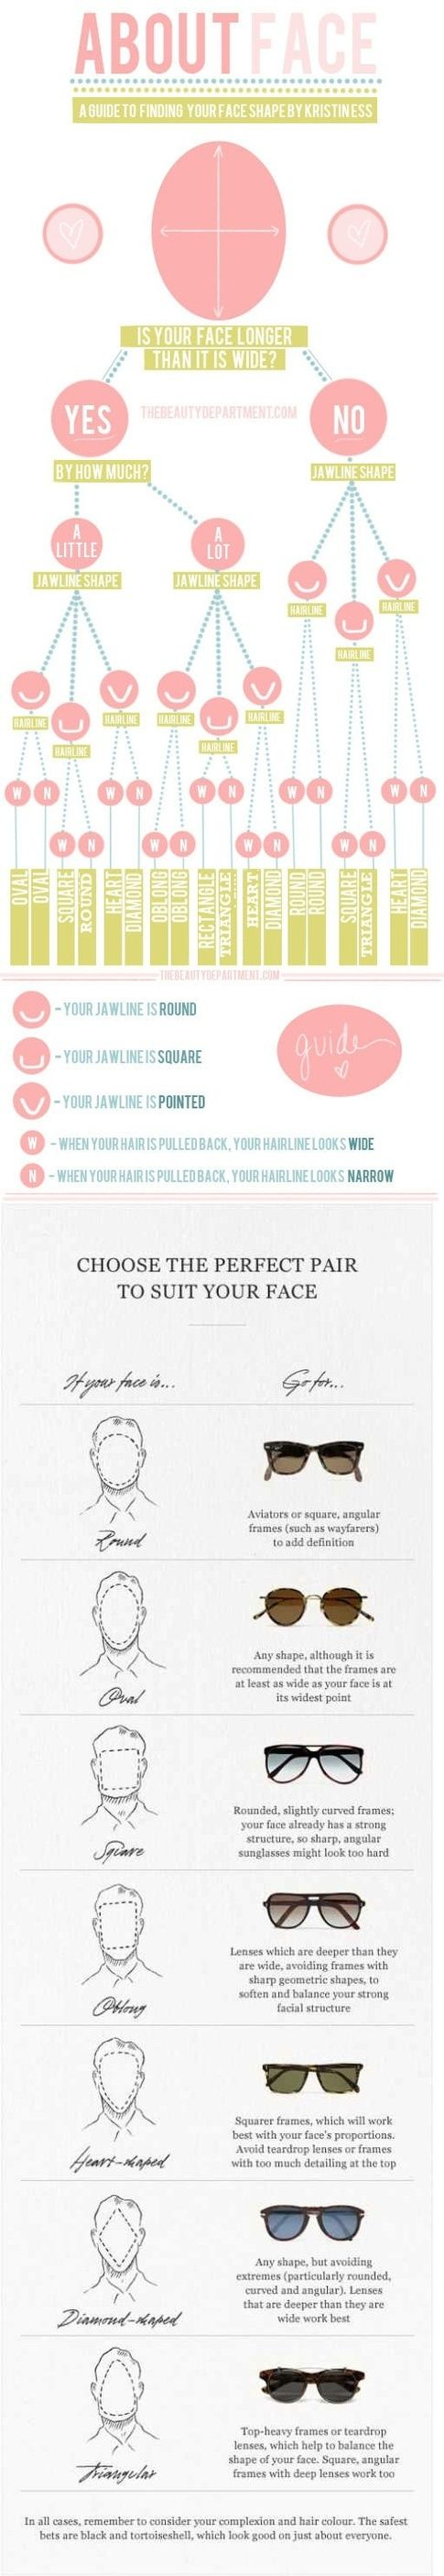 3ffef8da12 How do I select the best pair of glasses sunglasses to suit my face shape   - Quora